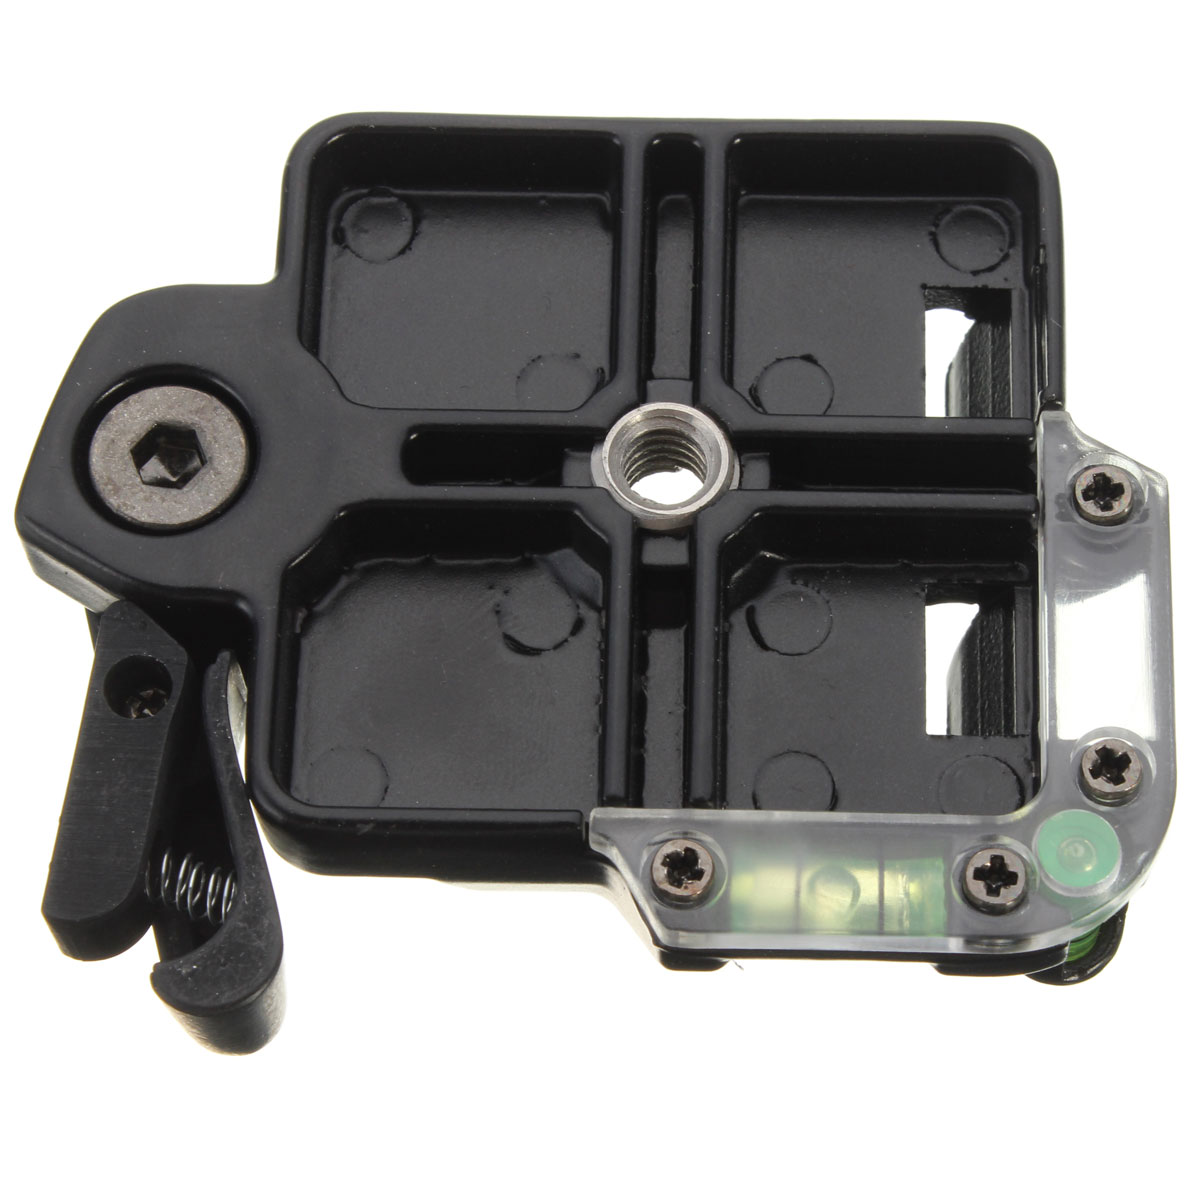 Qr compact camera stand quick release adapter clamp